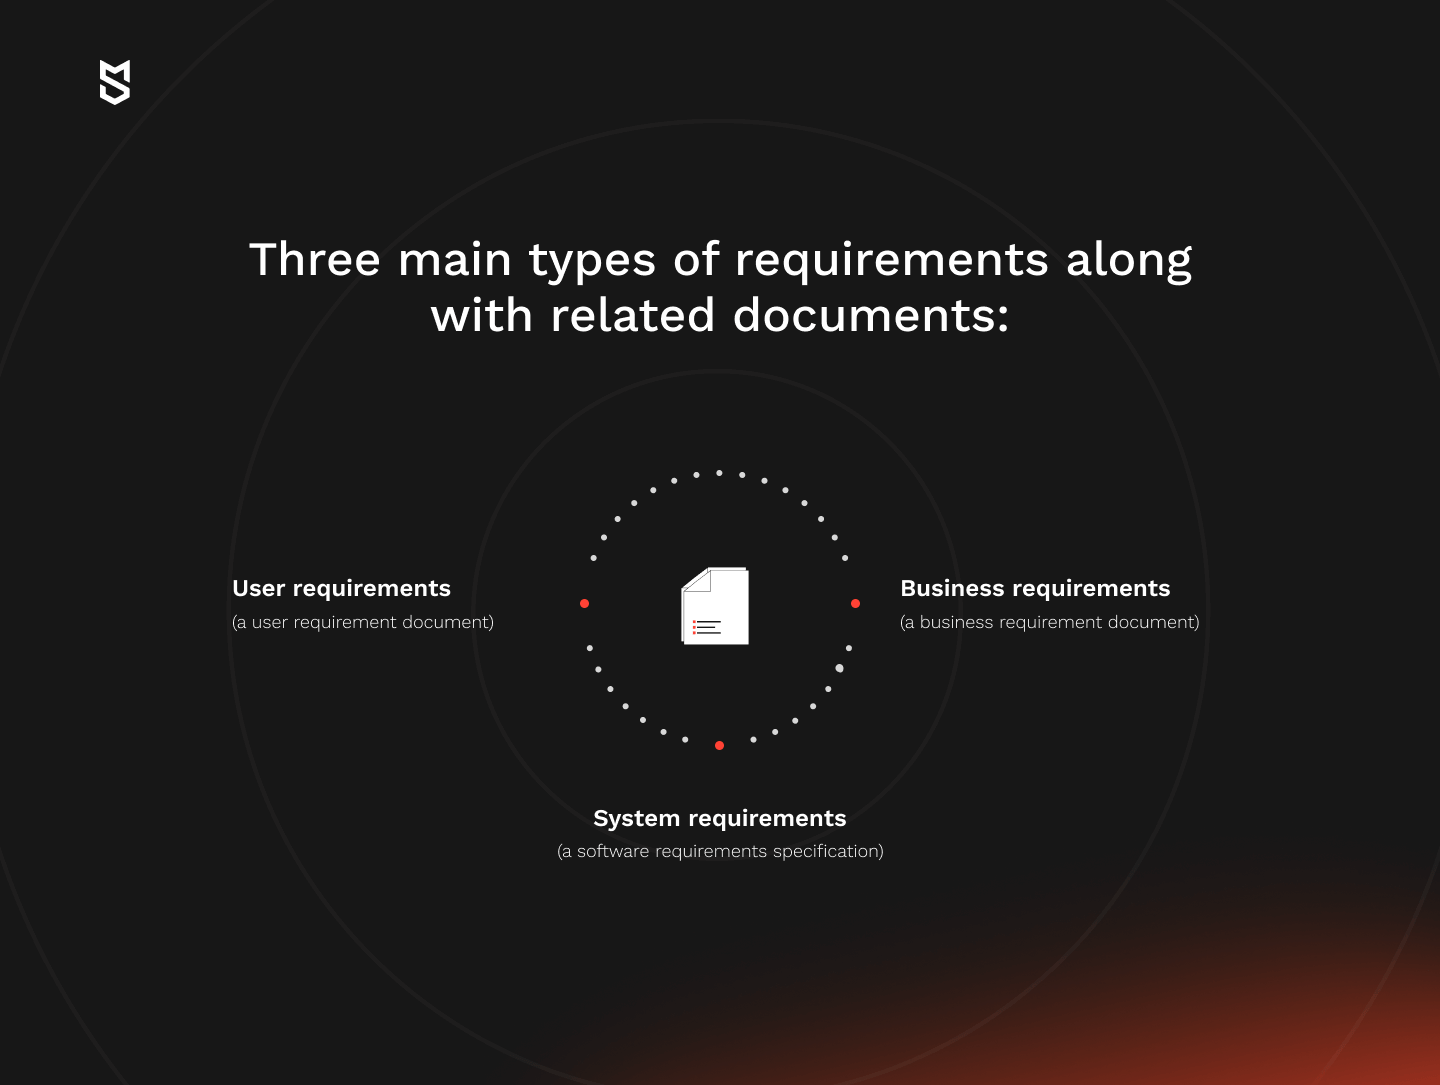 Three main types of requirements